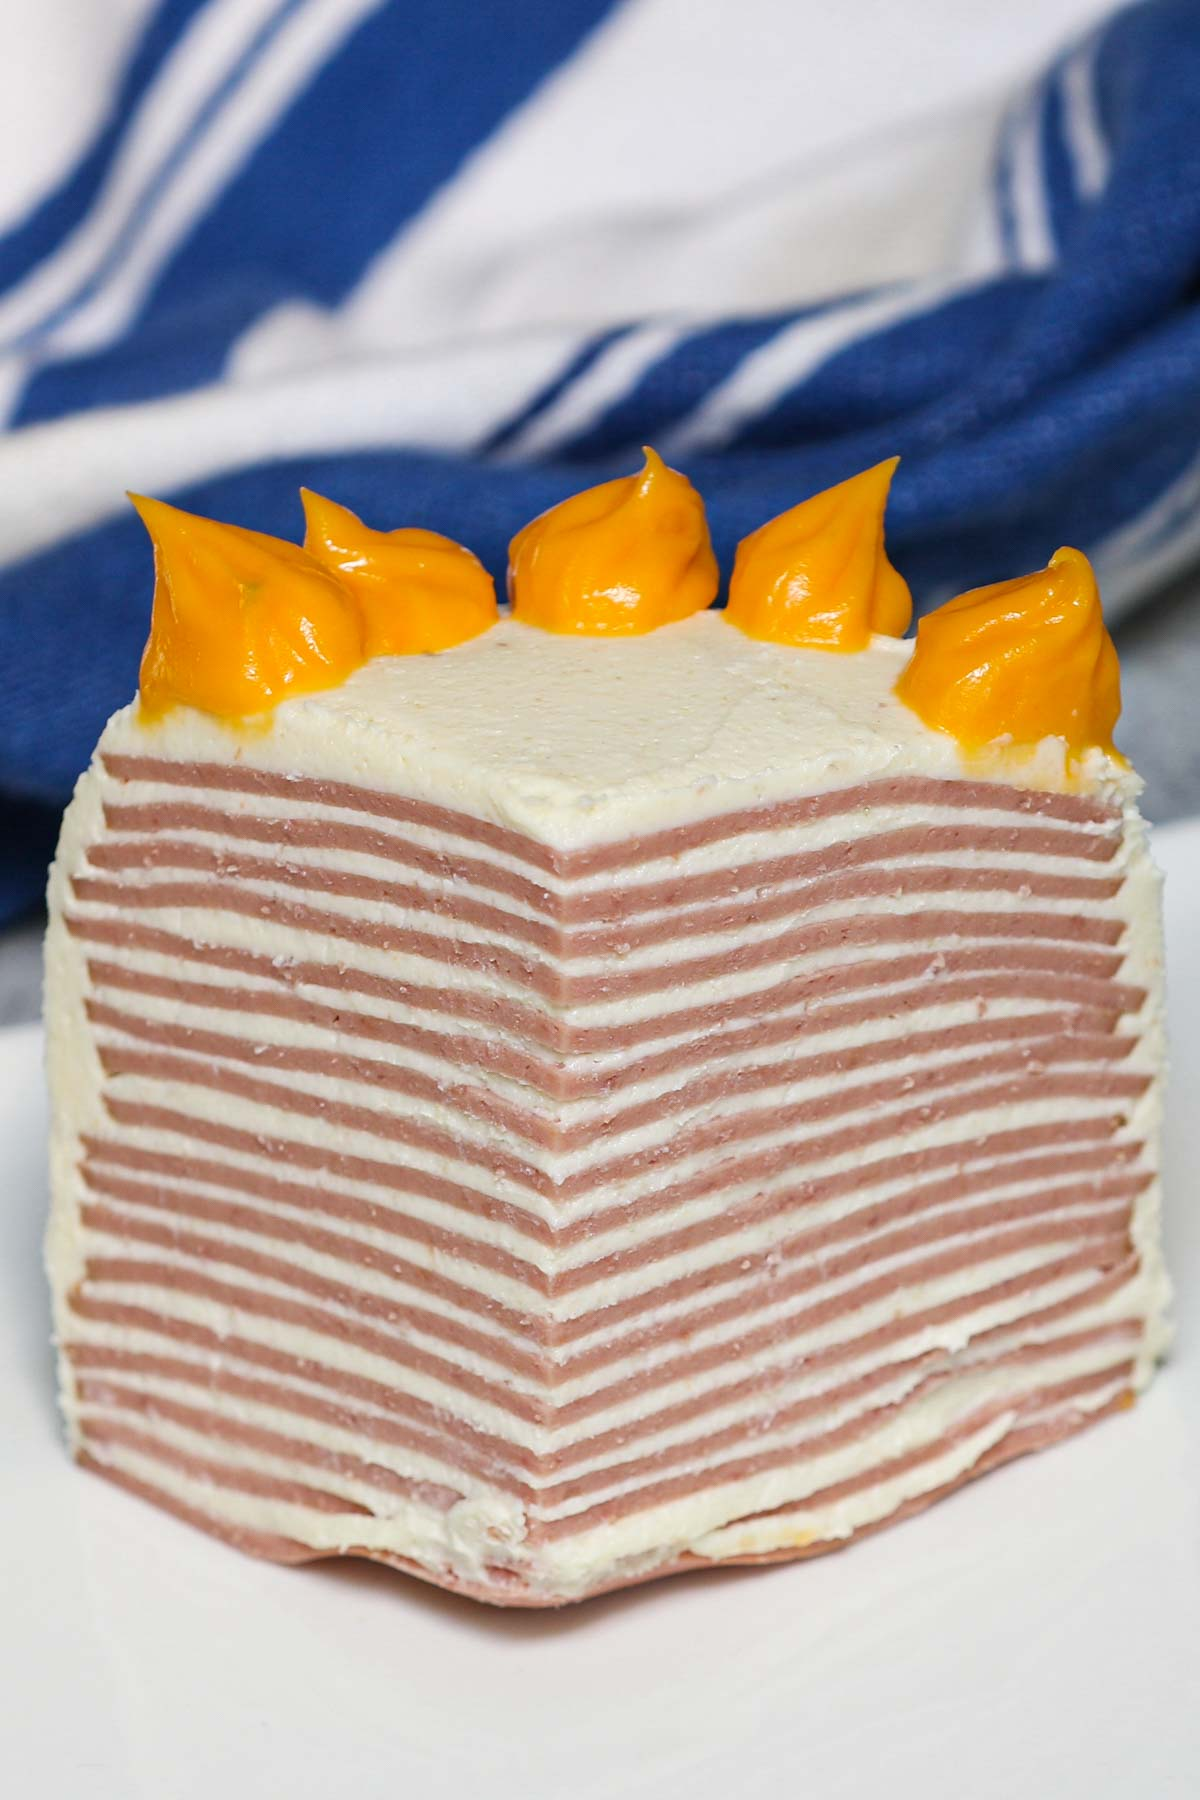 Don't let the name fool you! This isn't a sweet 'cake' for dessert. Bologna Cake is a simple, savory Southern dish, popularly served as an appetizer or side dish at potlucks or family events. You may have heard of this unique meal in Sweet Home Alabama. Whether you're curious or amused, you've got to give this bologna cake recipe a try.